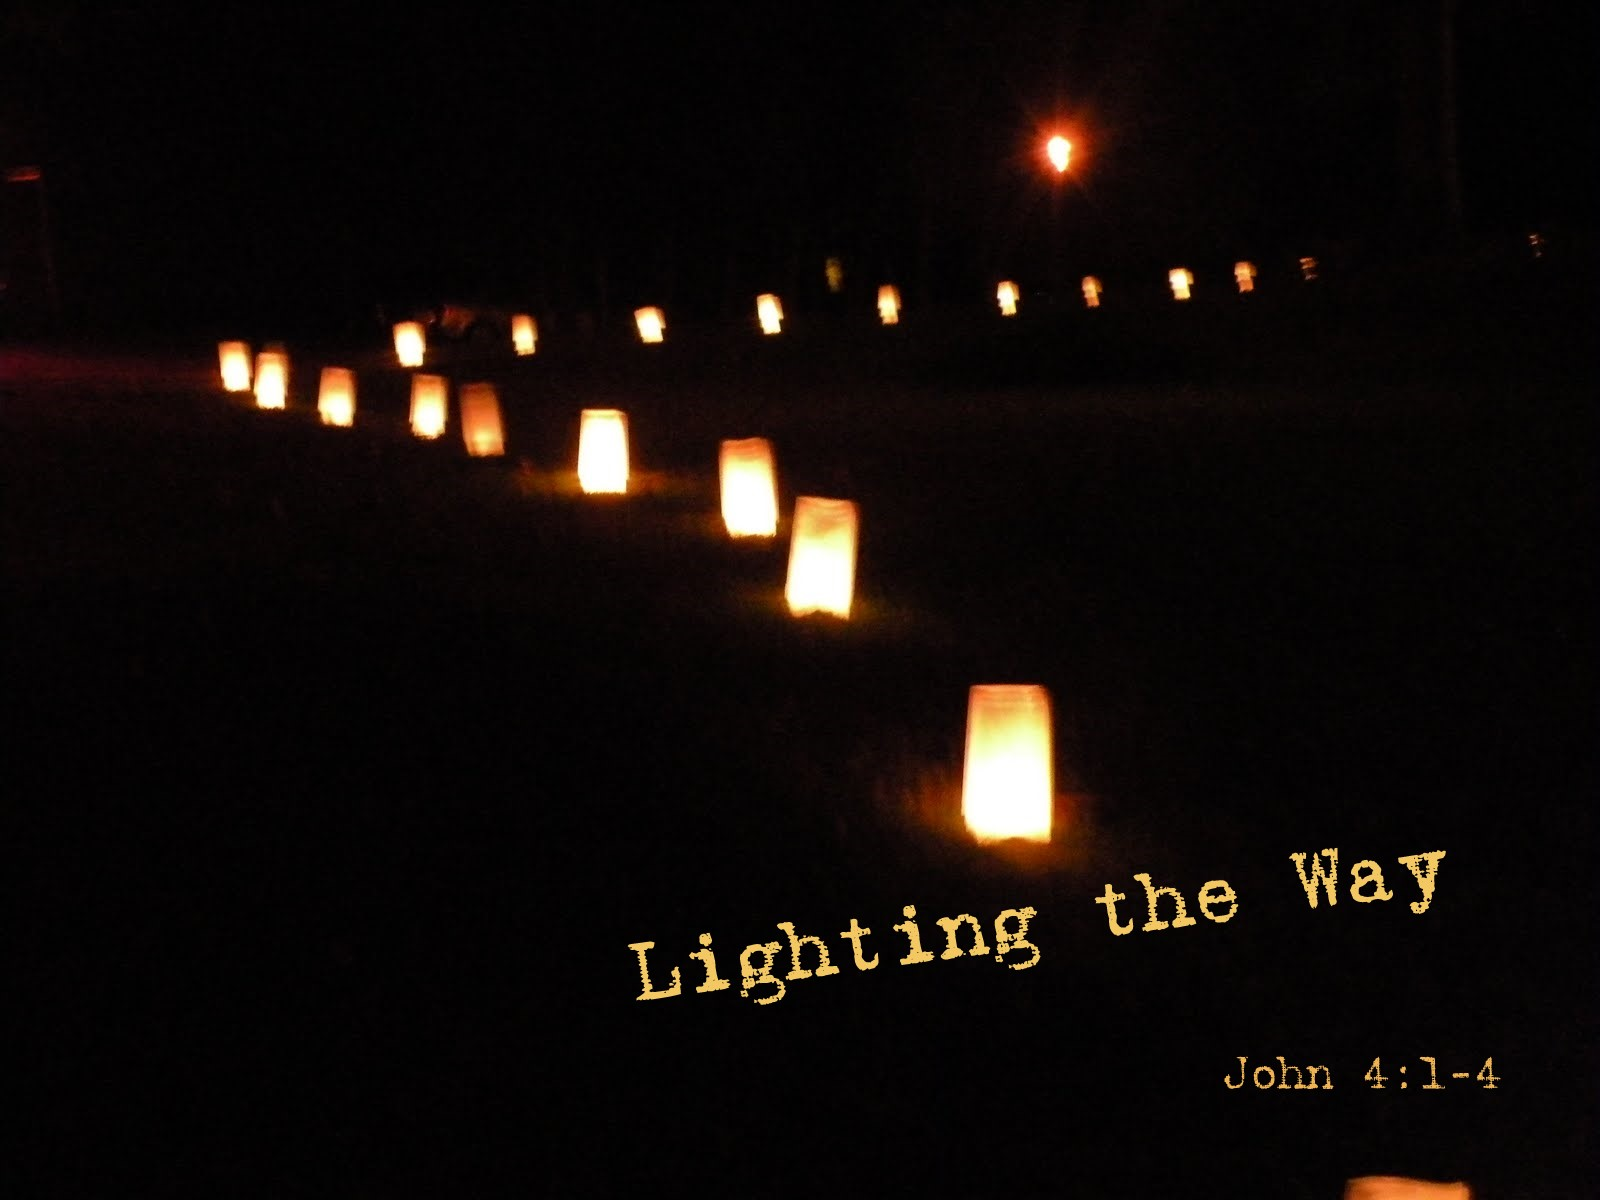 Lighting the way citylight church for Lamp and light ministries